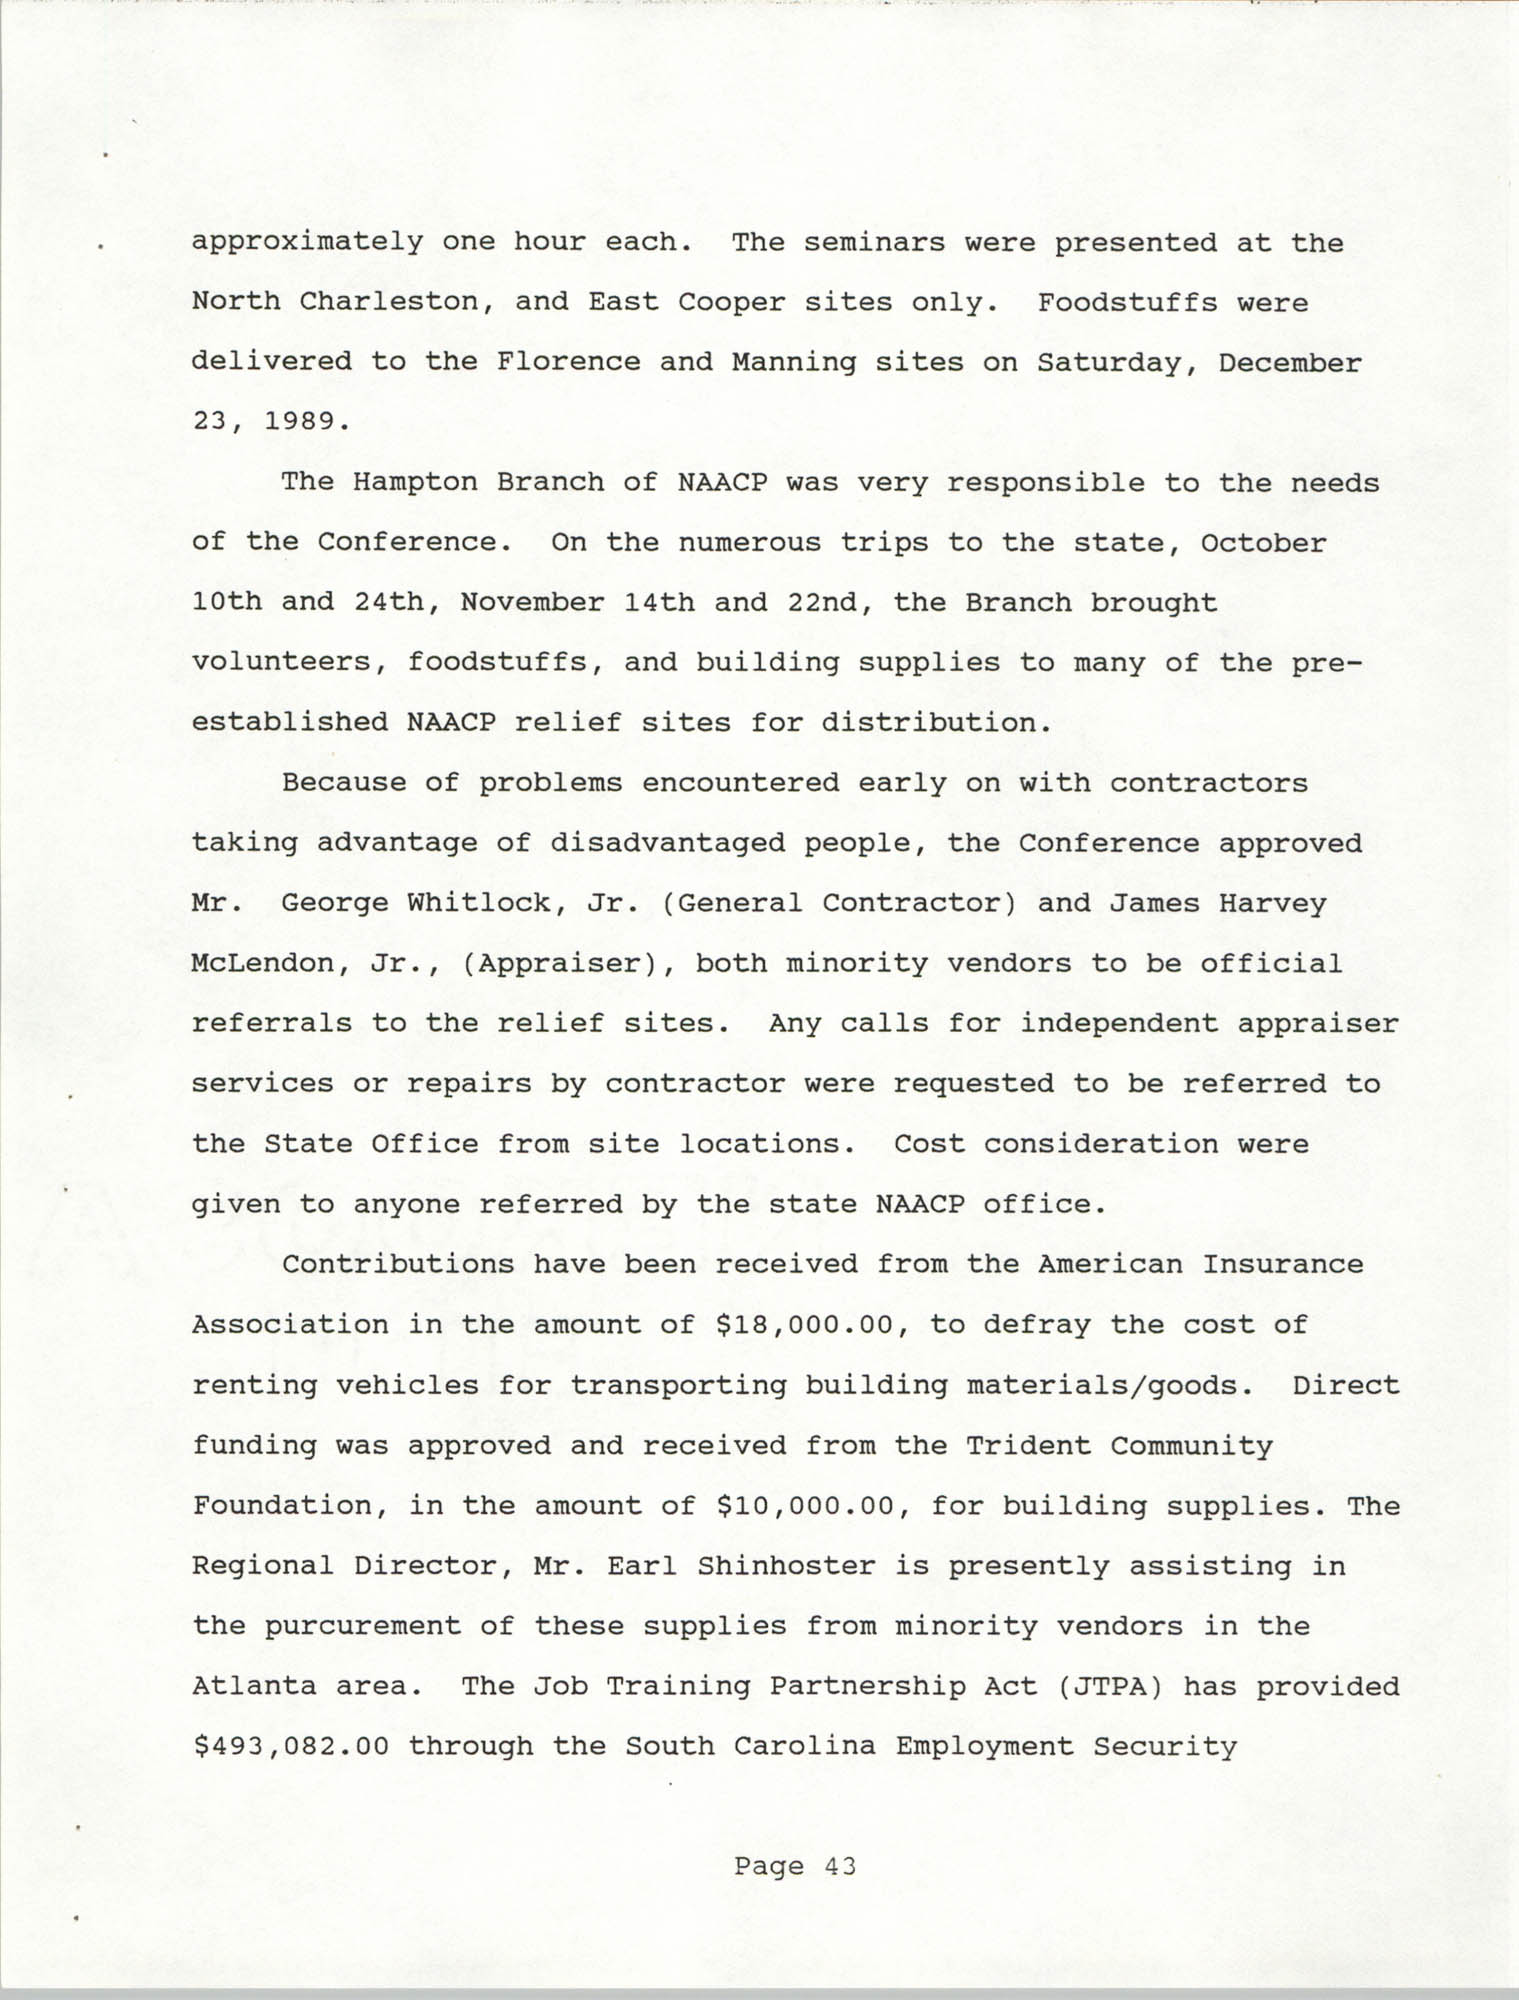 South Carolina Conference of Branches of the NAACP, 1990 Annual Report, Part Two, Page 43